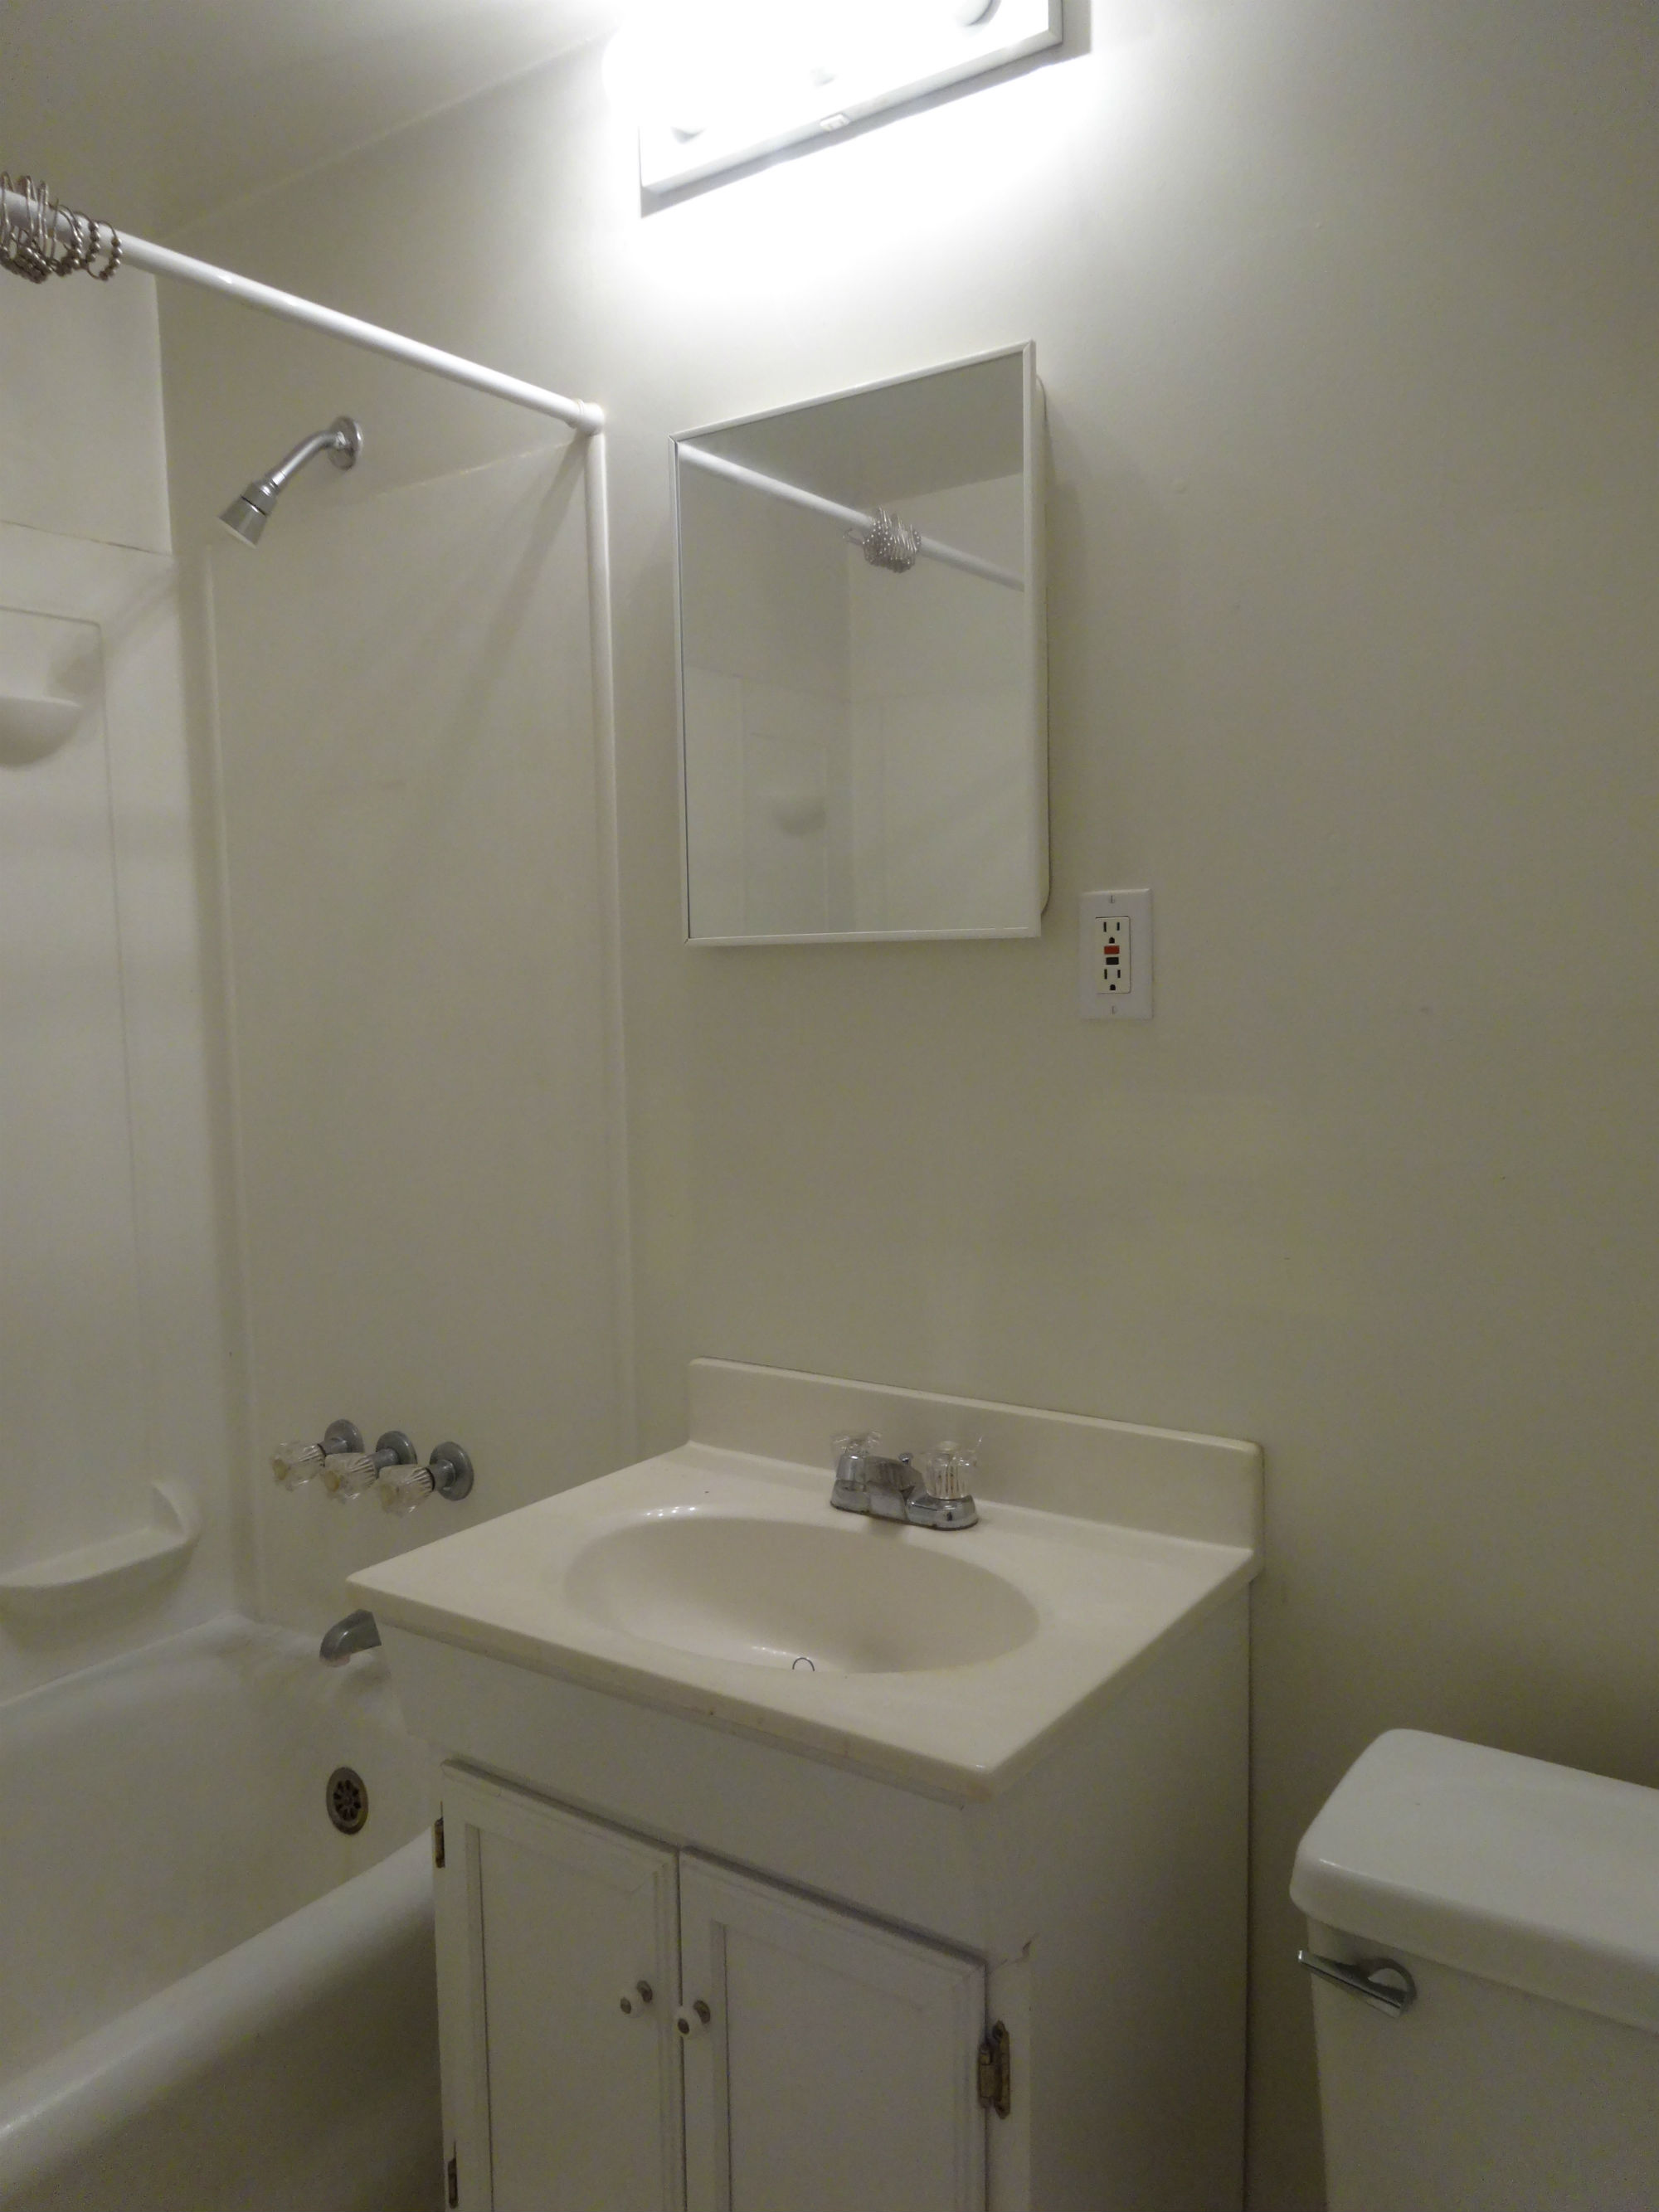 Left side bathroom with newer vanity and toilet.